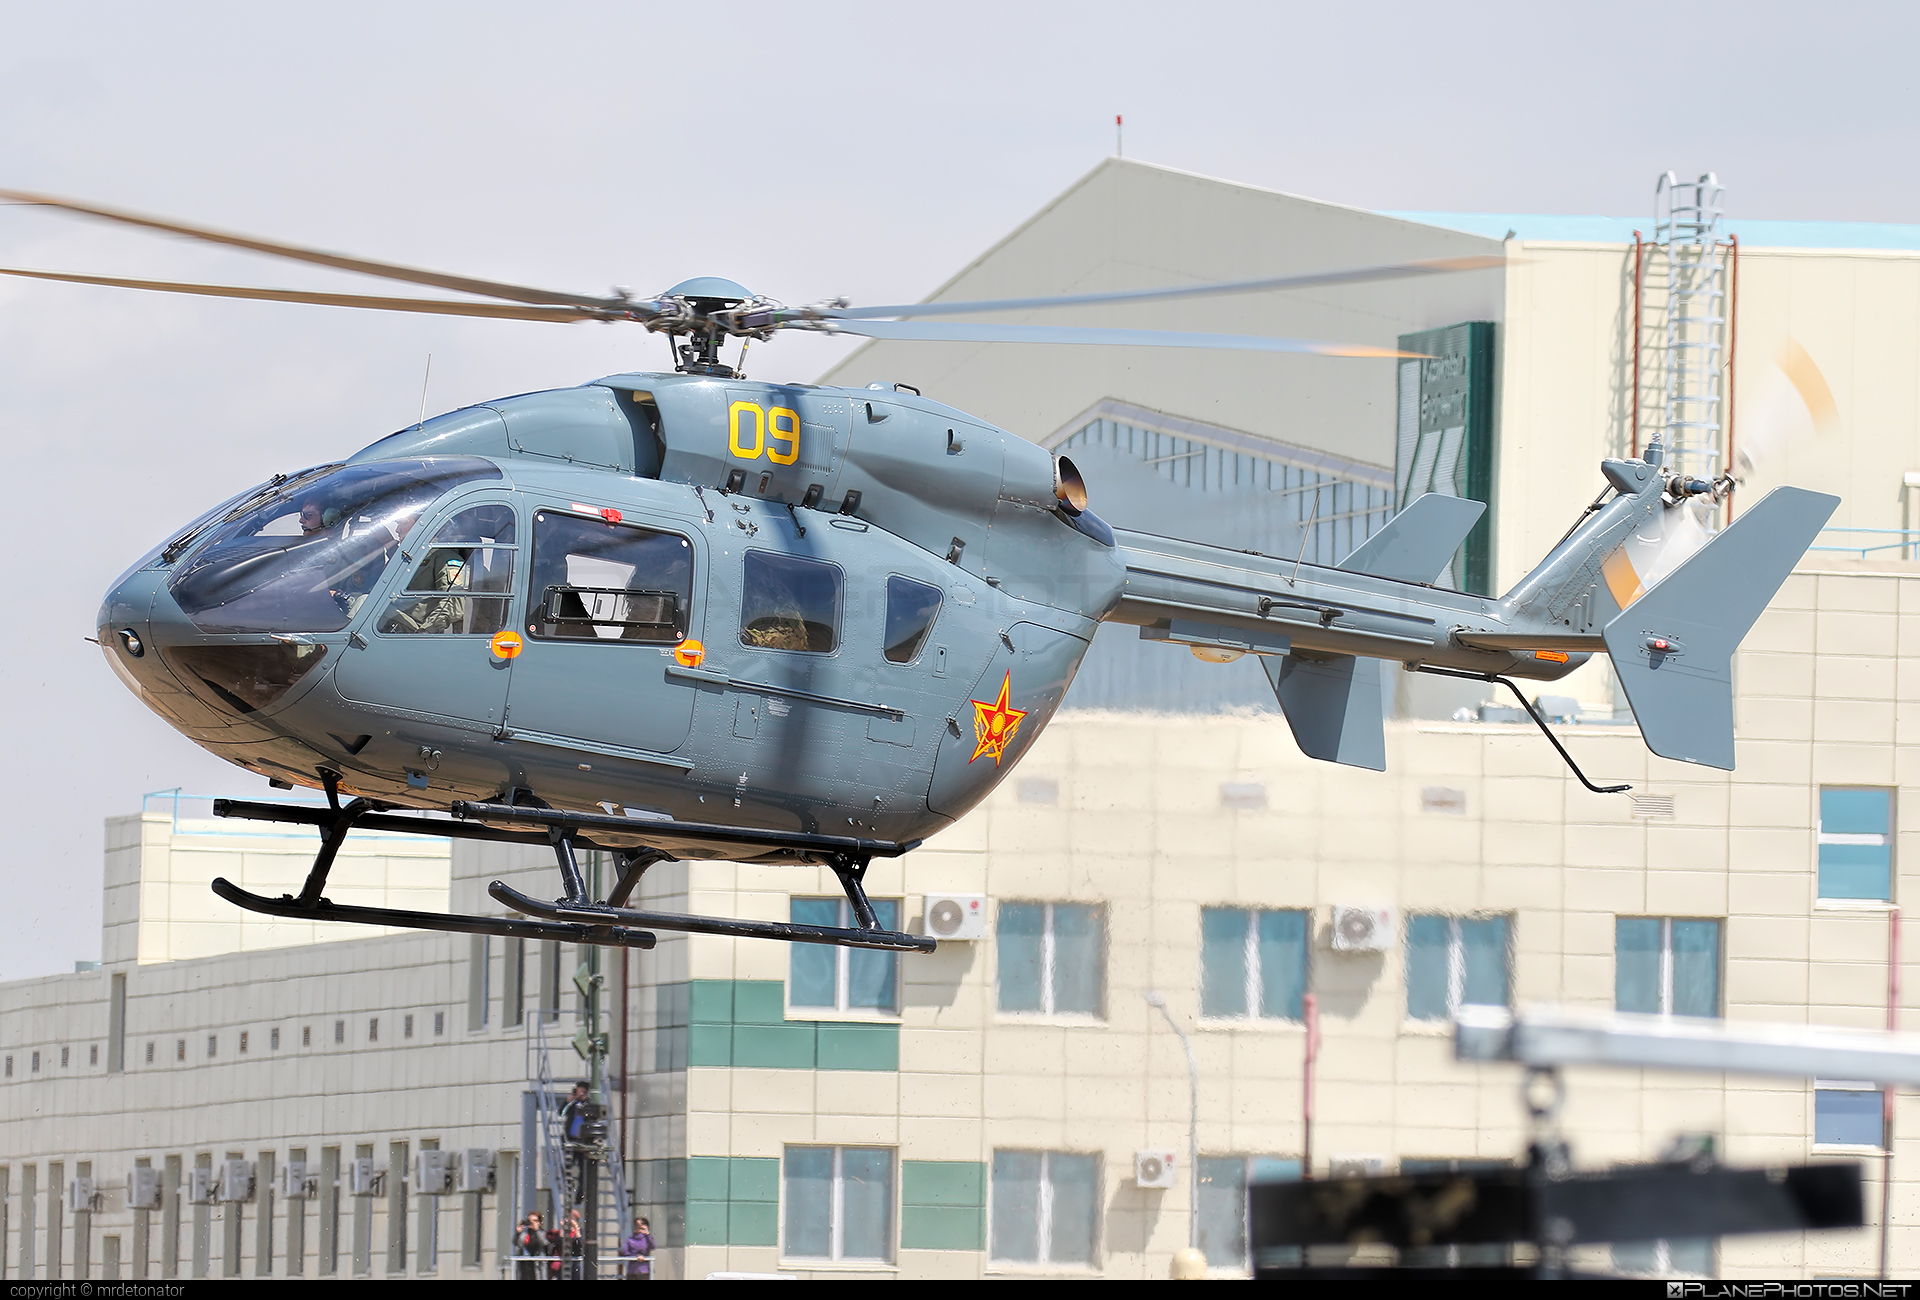 Eurocopter EC145 - 09 operated by Kazakhstan Air Defence Force #ec145 #eurocopter